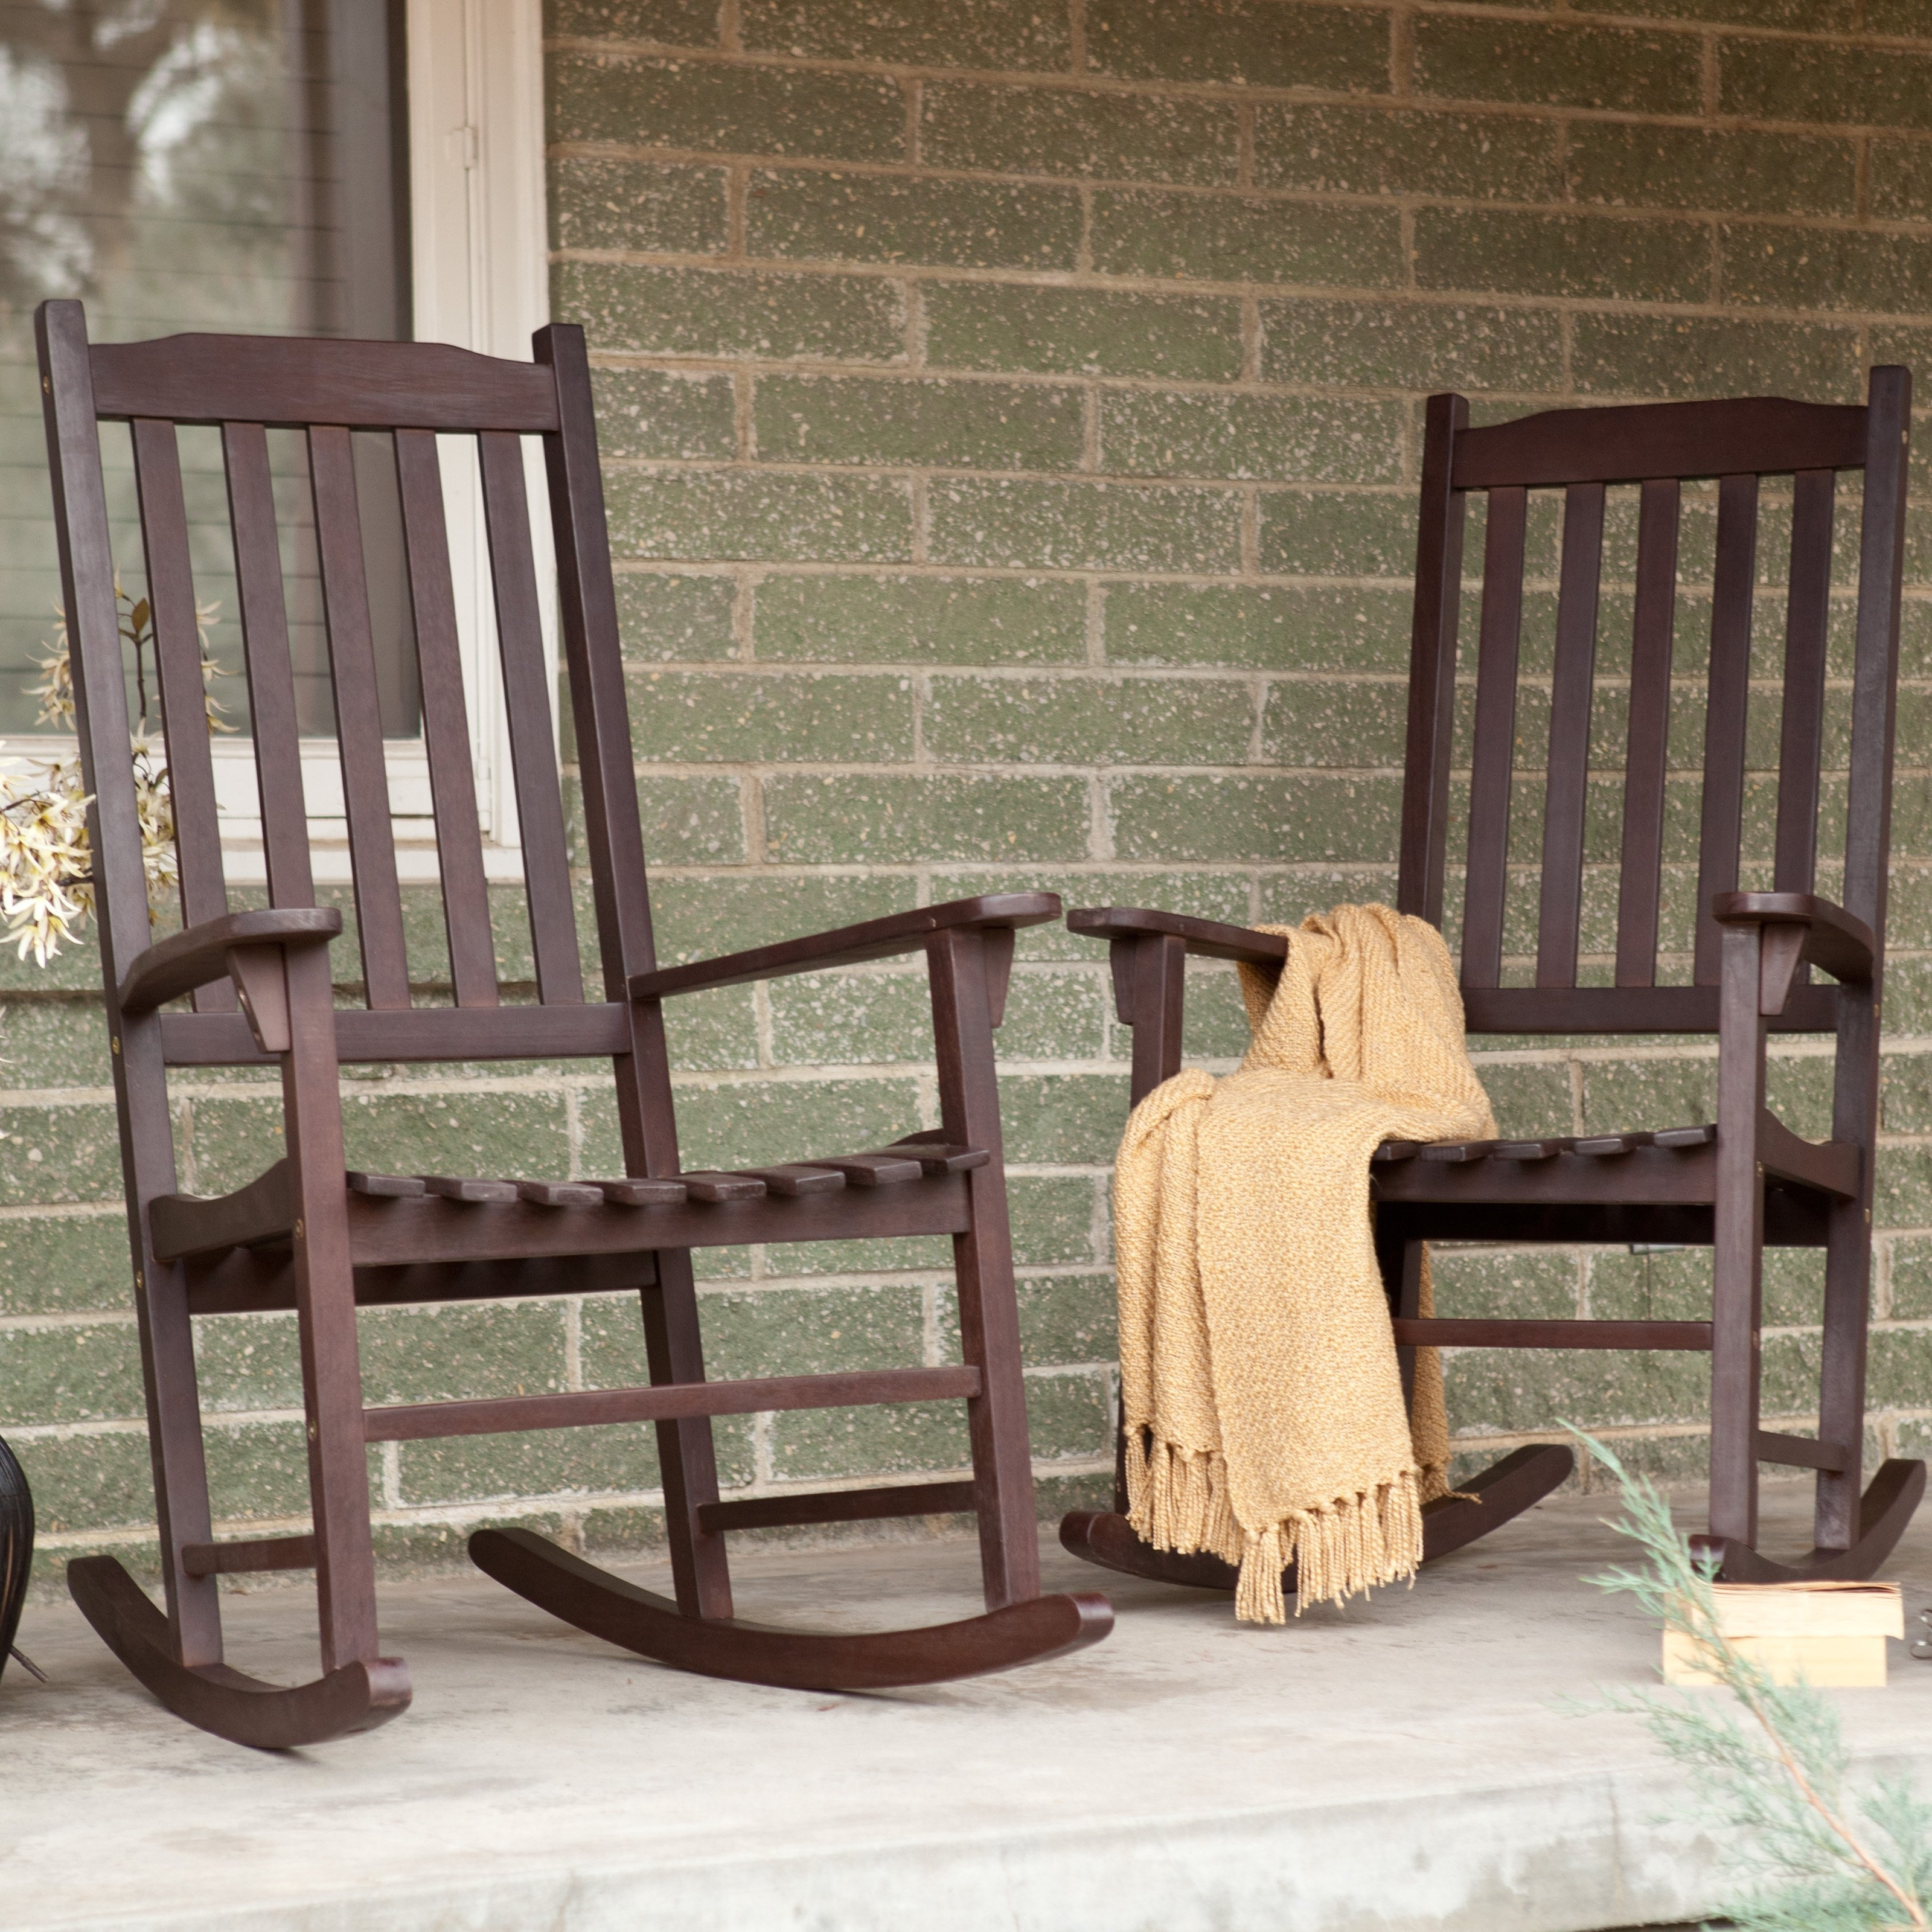 Current How To Choose Comfortable Outdoor Rocking Chairs – Yonohomedesign Throughout Outdoor Rocking Chairs (View 4 of 15)